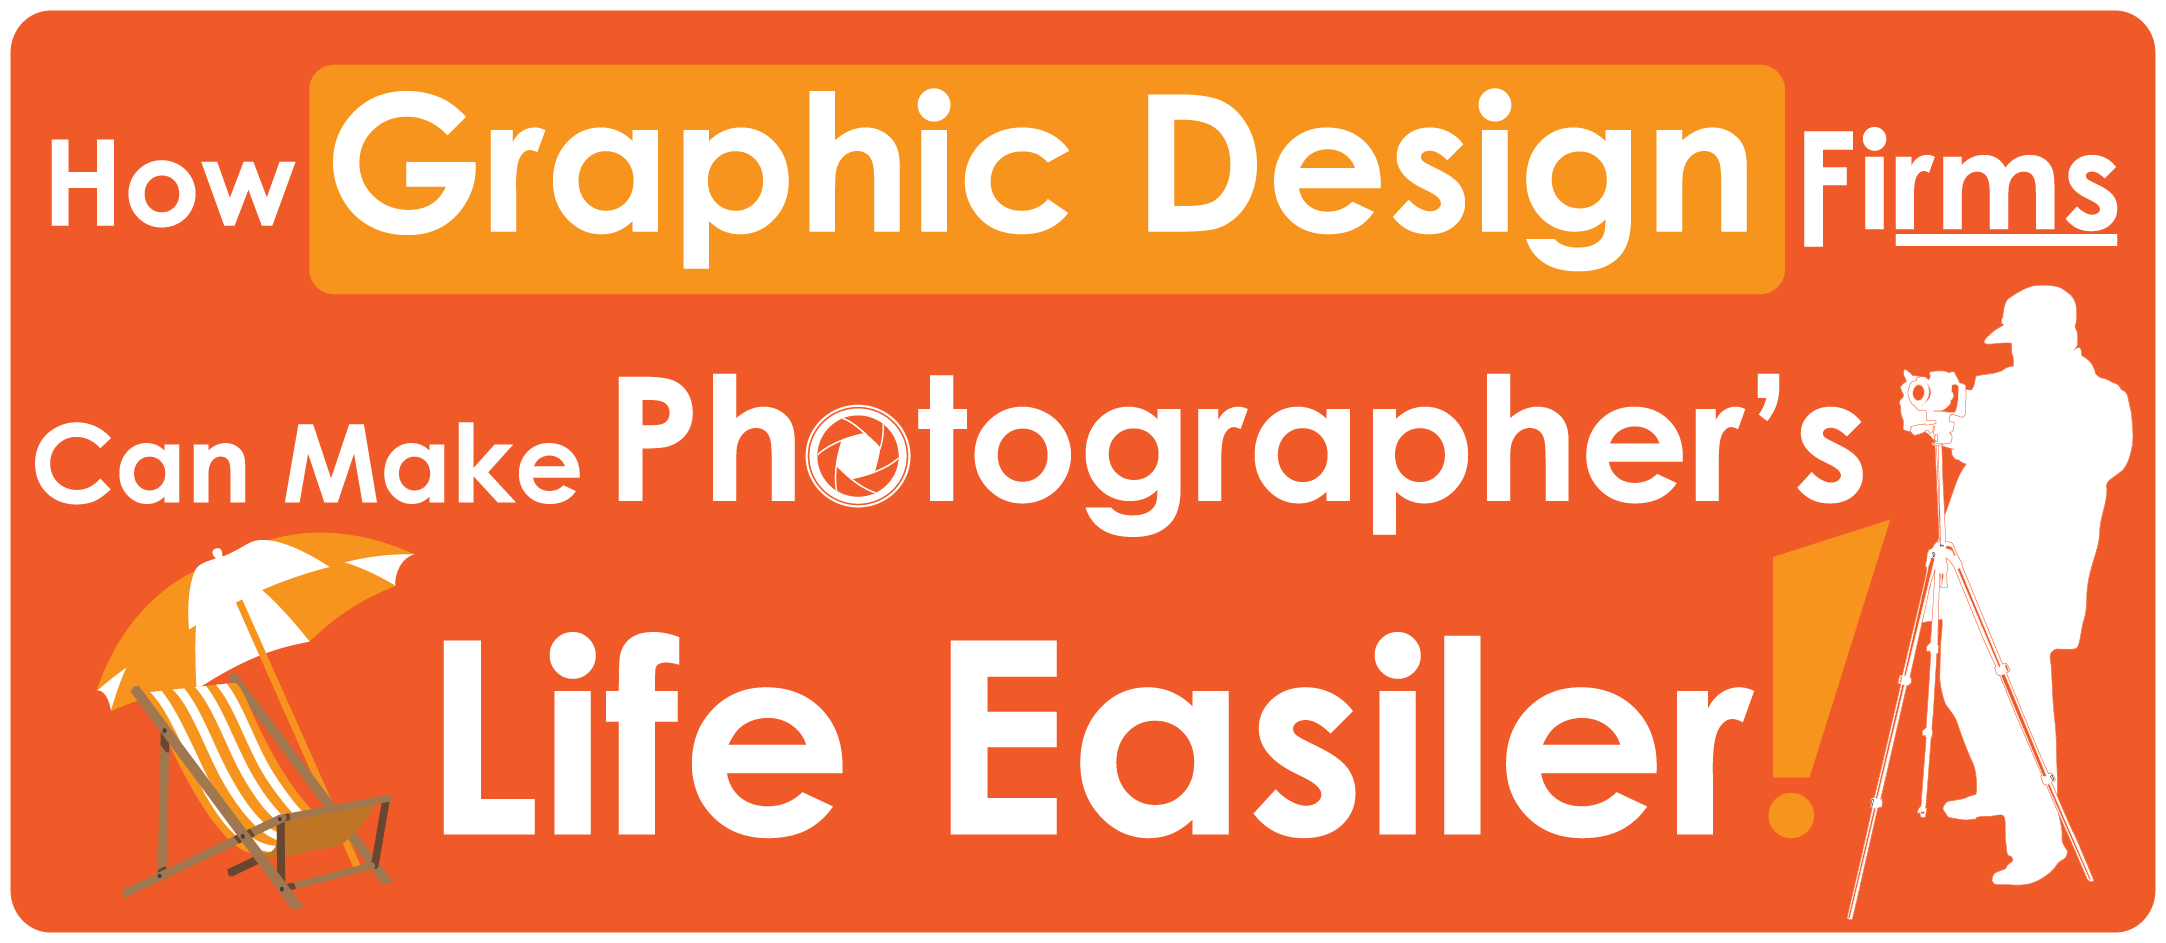 Graphic Design Firms